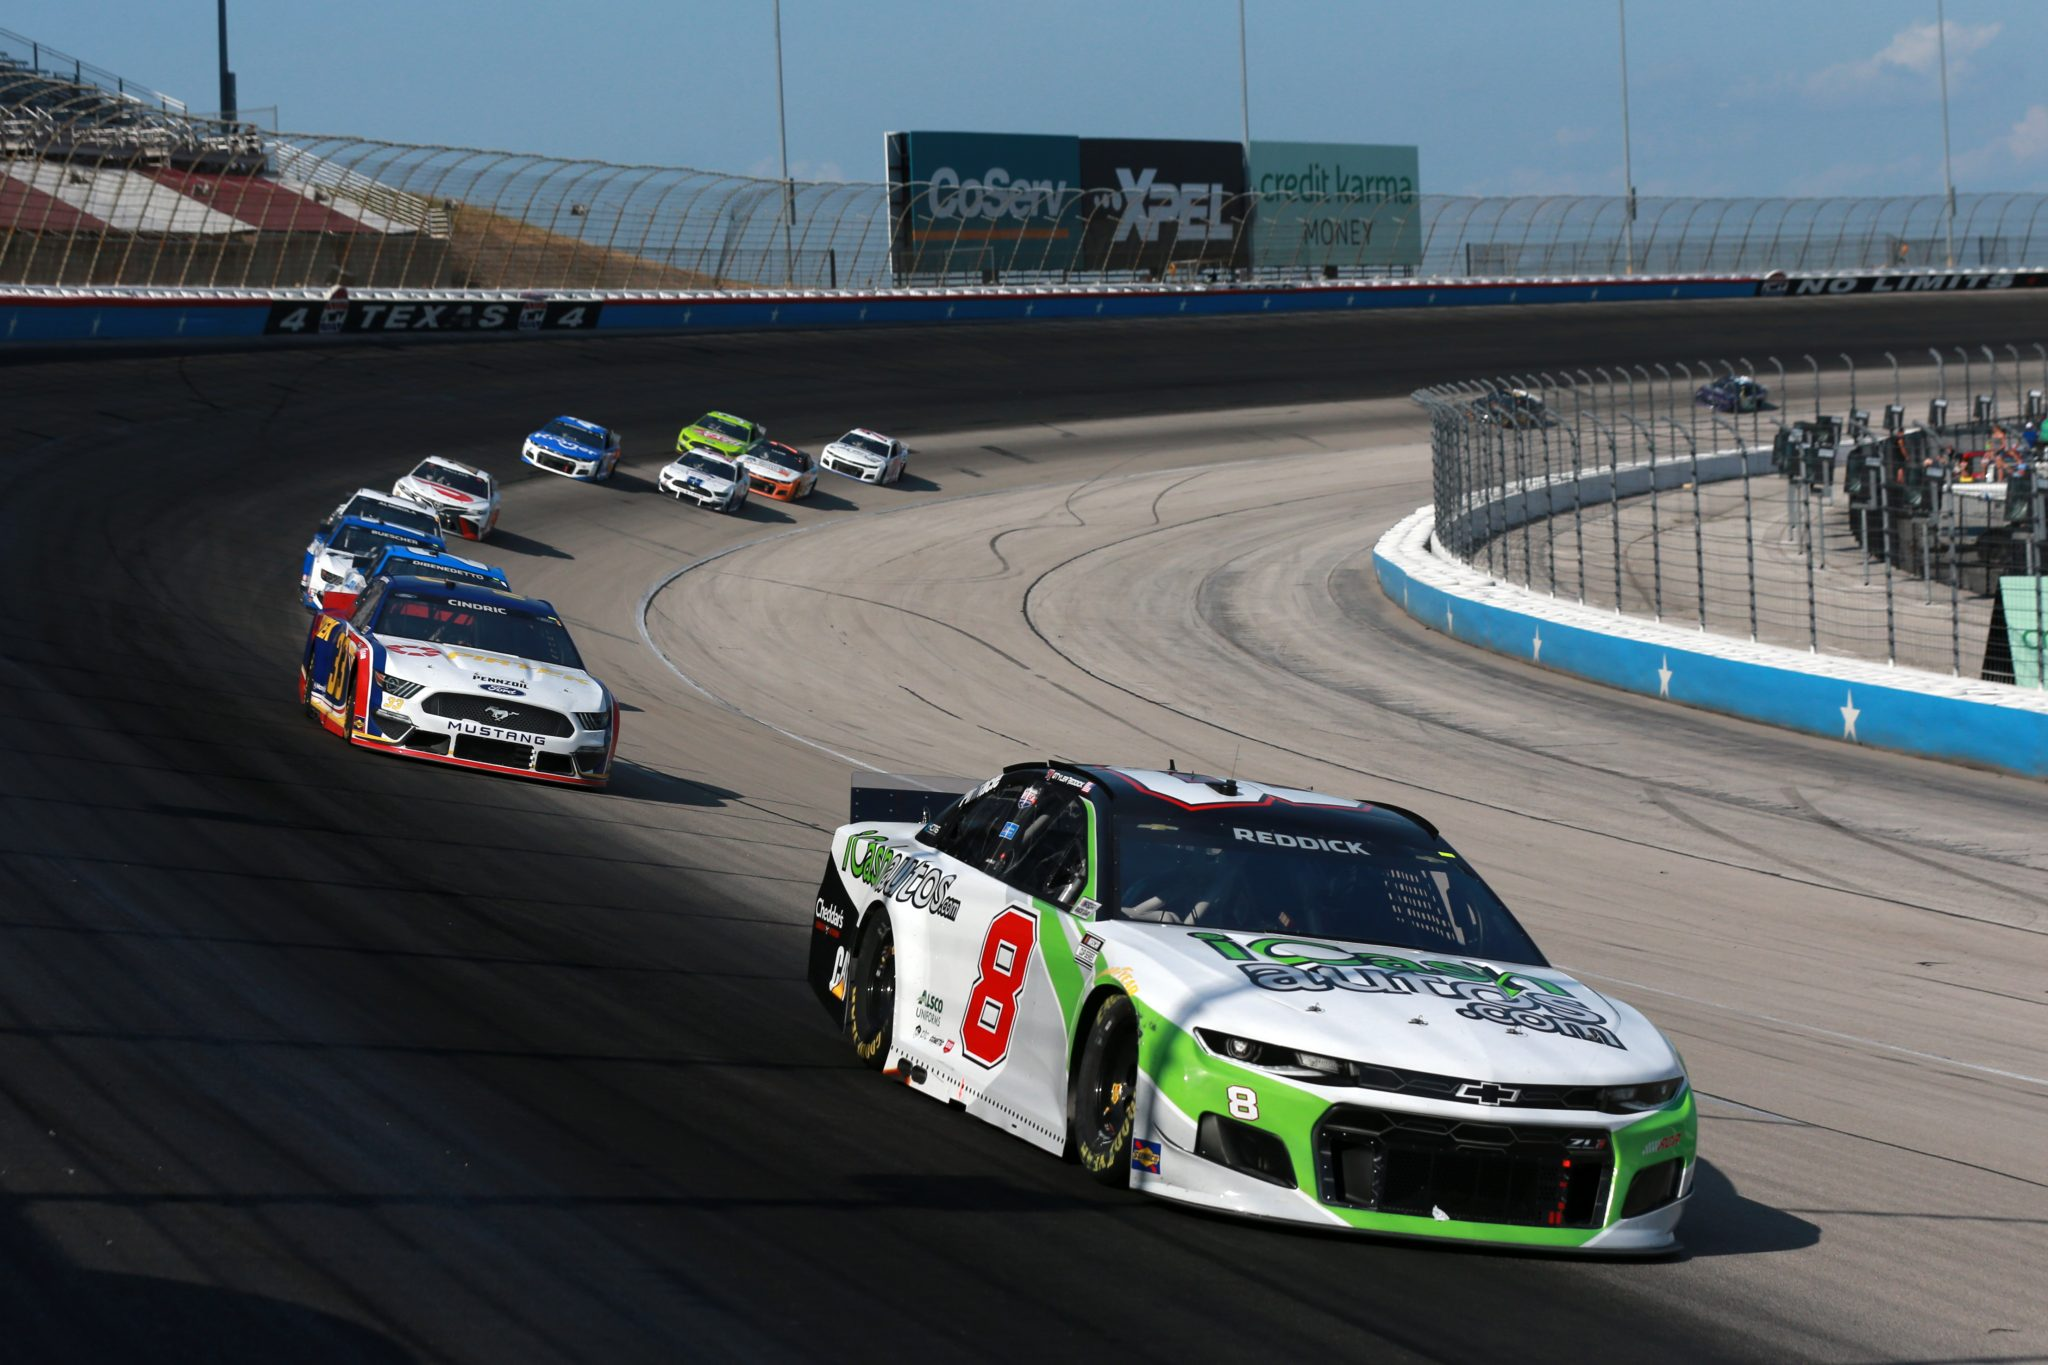 FORT WORTH, TEXAS - JUNE 13: Tyler Reddick, driver of the #8 iCashautos/I Am Second Chevrolet, leads the field during the NASCAR All-Star Open at Texas Motor Speedway on June 13, 2021 in Fort Worth, Texas. (Photo by Sean Gardner/Getty Images)   Getty Images